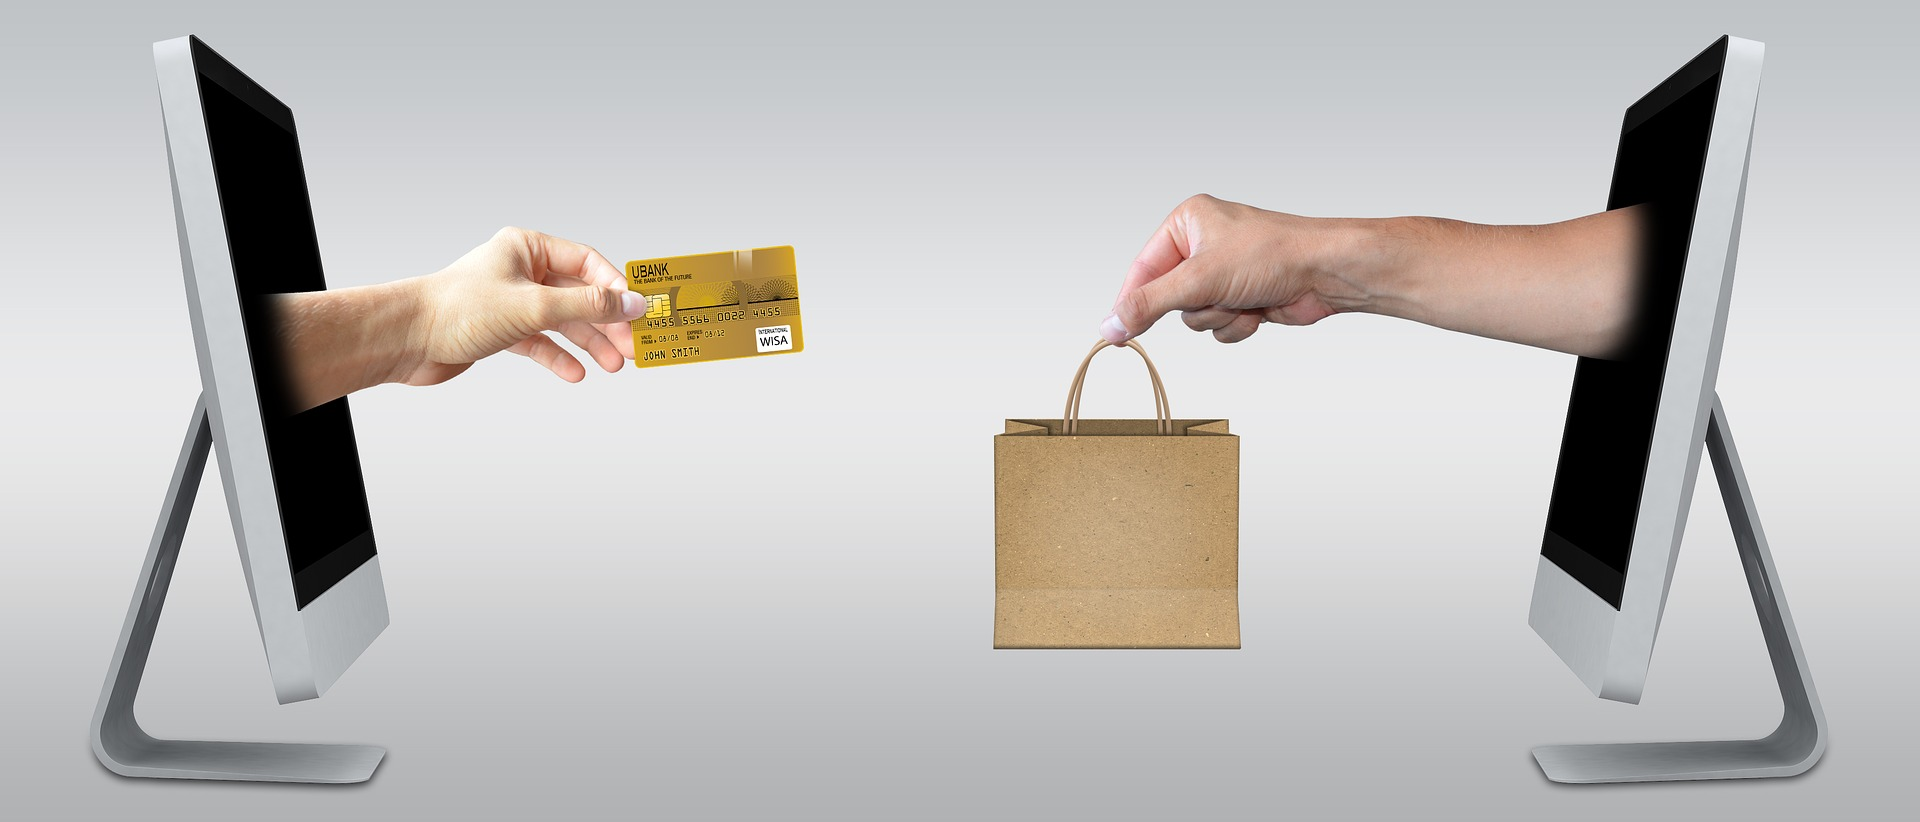 Two monitors with arms reaching out of them, exchanging a gold credit card for purchased items